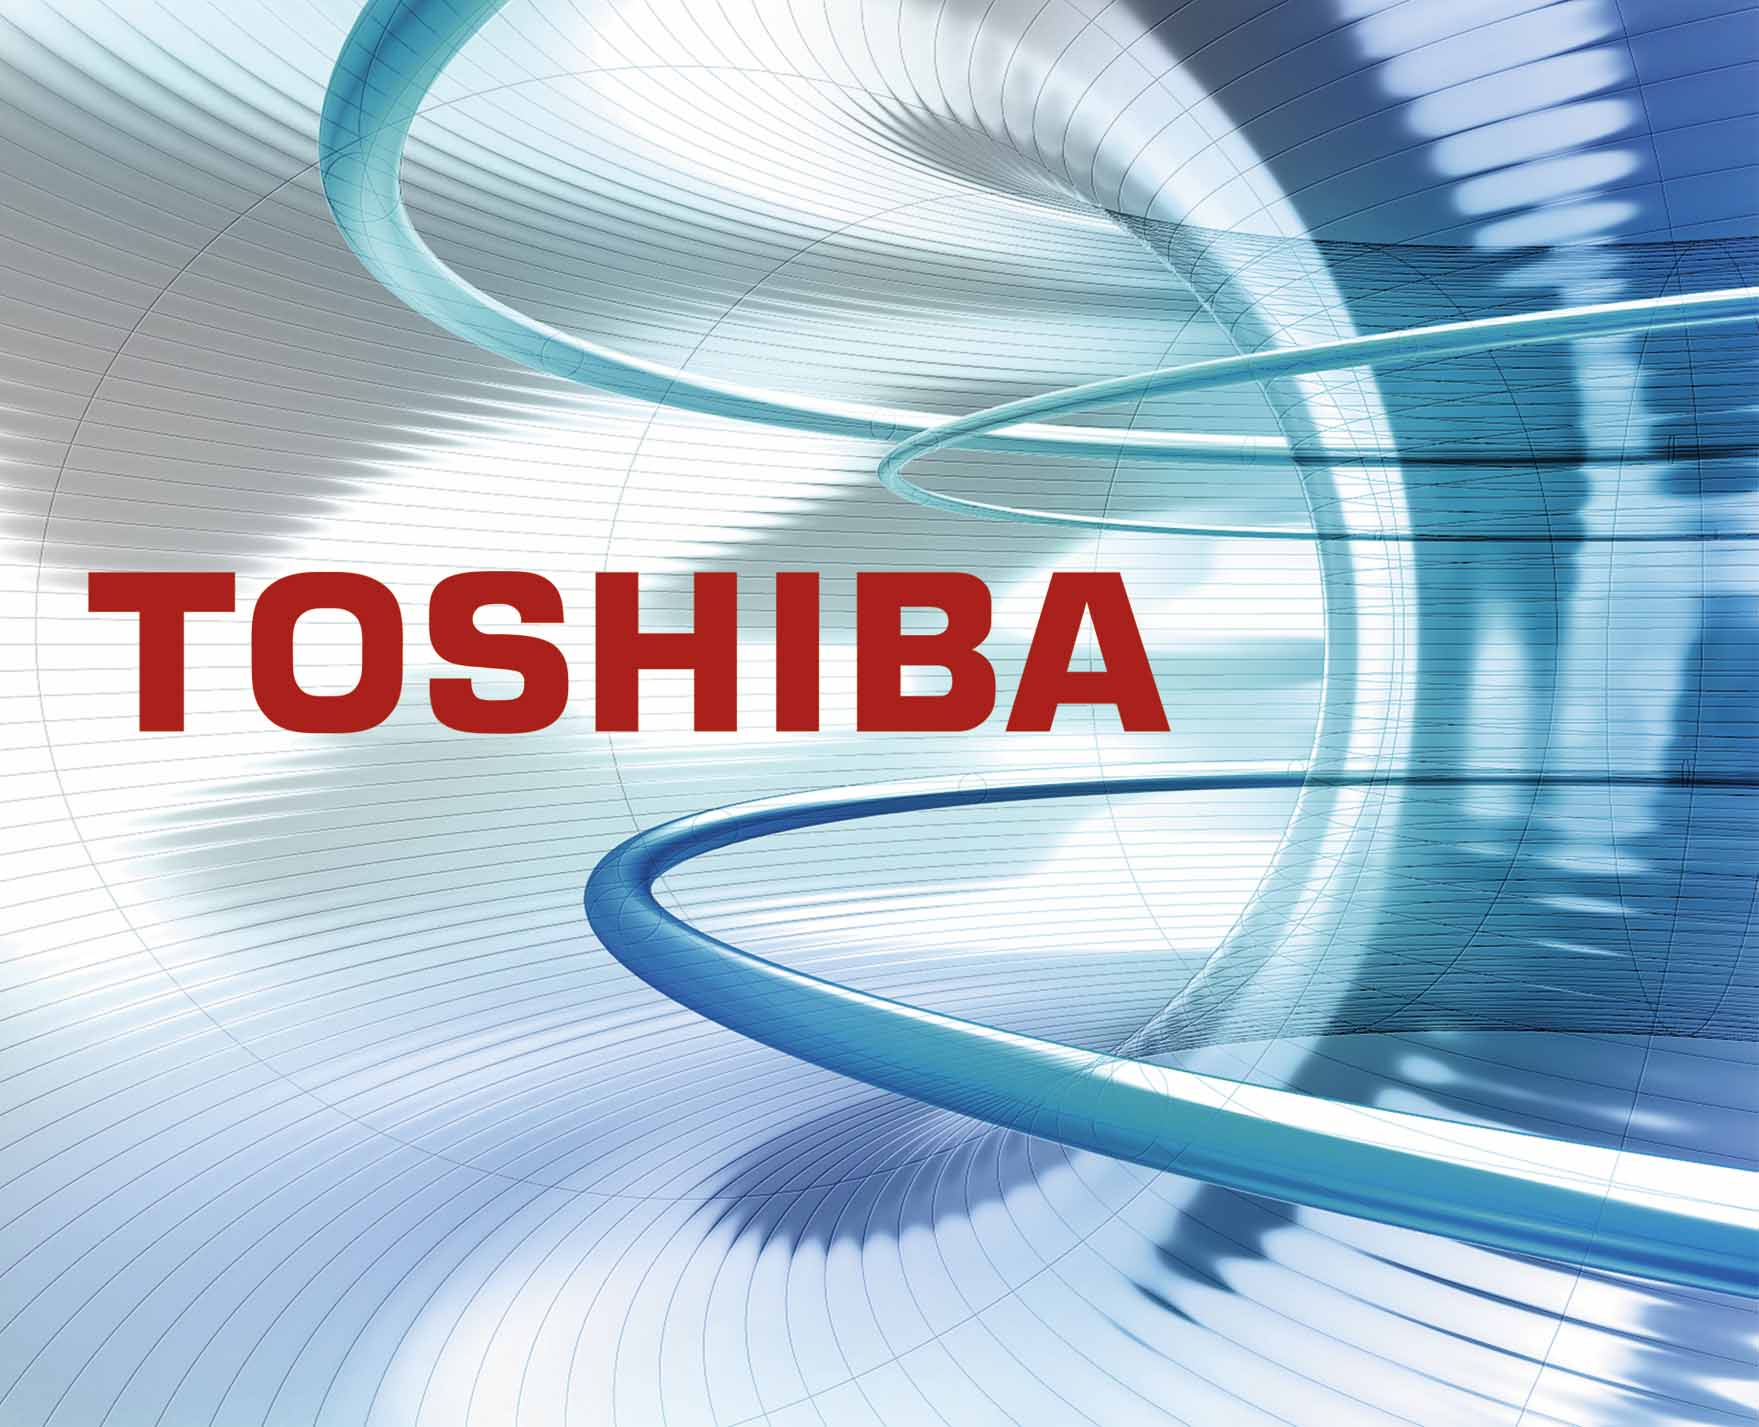 Toshiba Desktop Backgrounds Wallpaper Cave